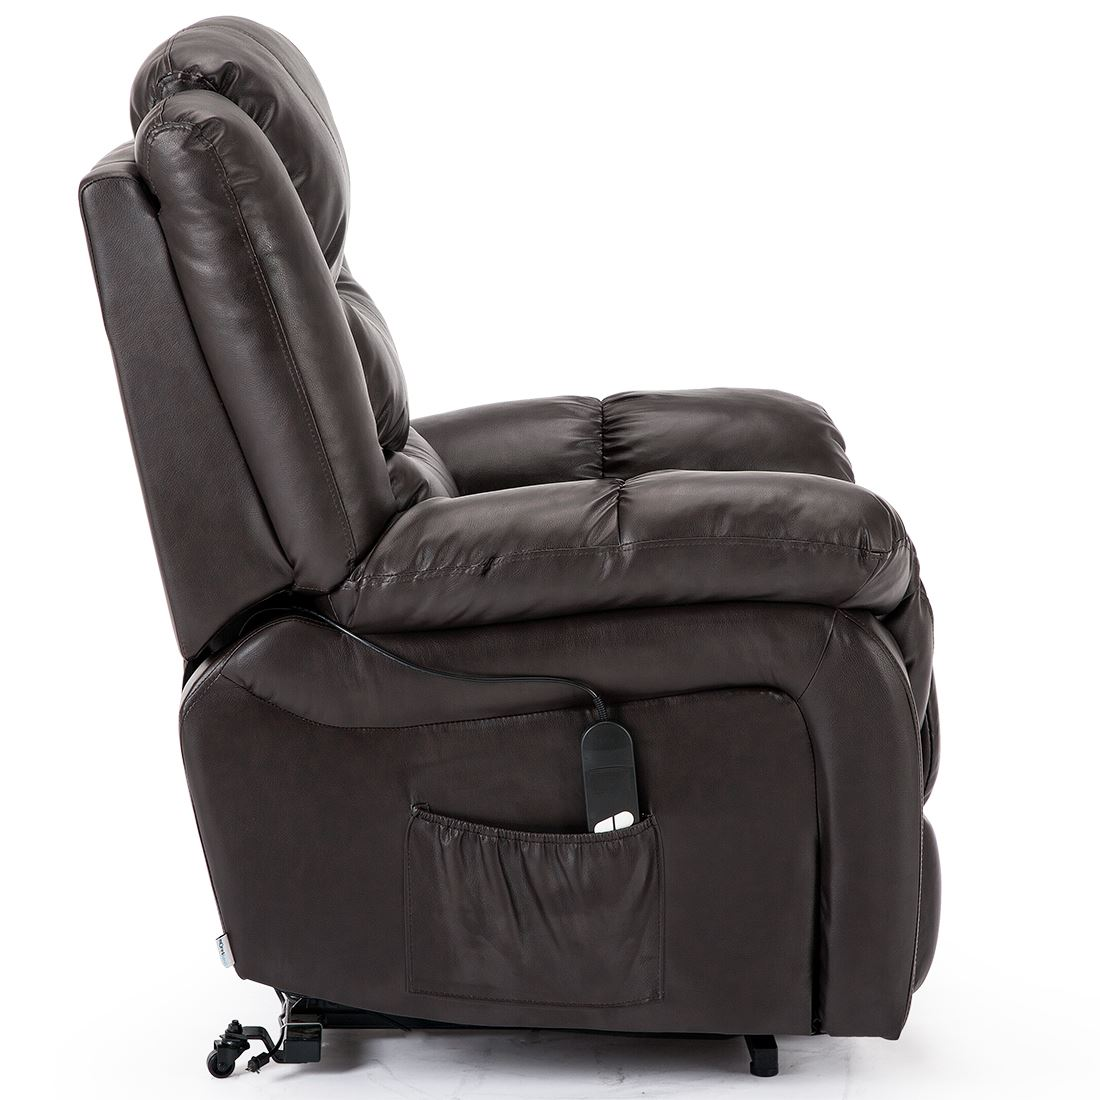 SEATTLE-ELECTRIC-RISE-REAL-LEATHER-RECLINER-ARMCHAIR-SOFA-HOME-LOUNGE-CHAIR thumbnail 16